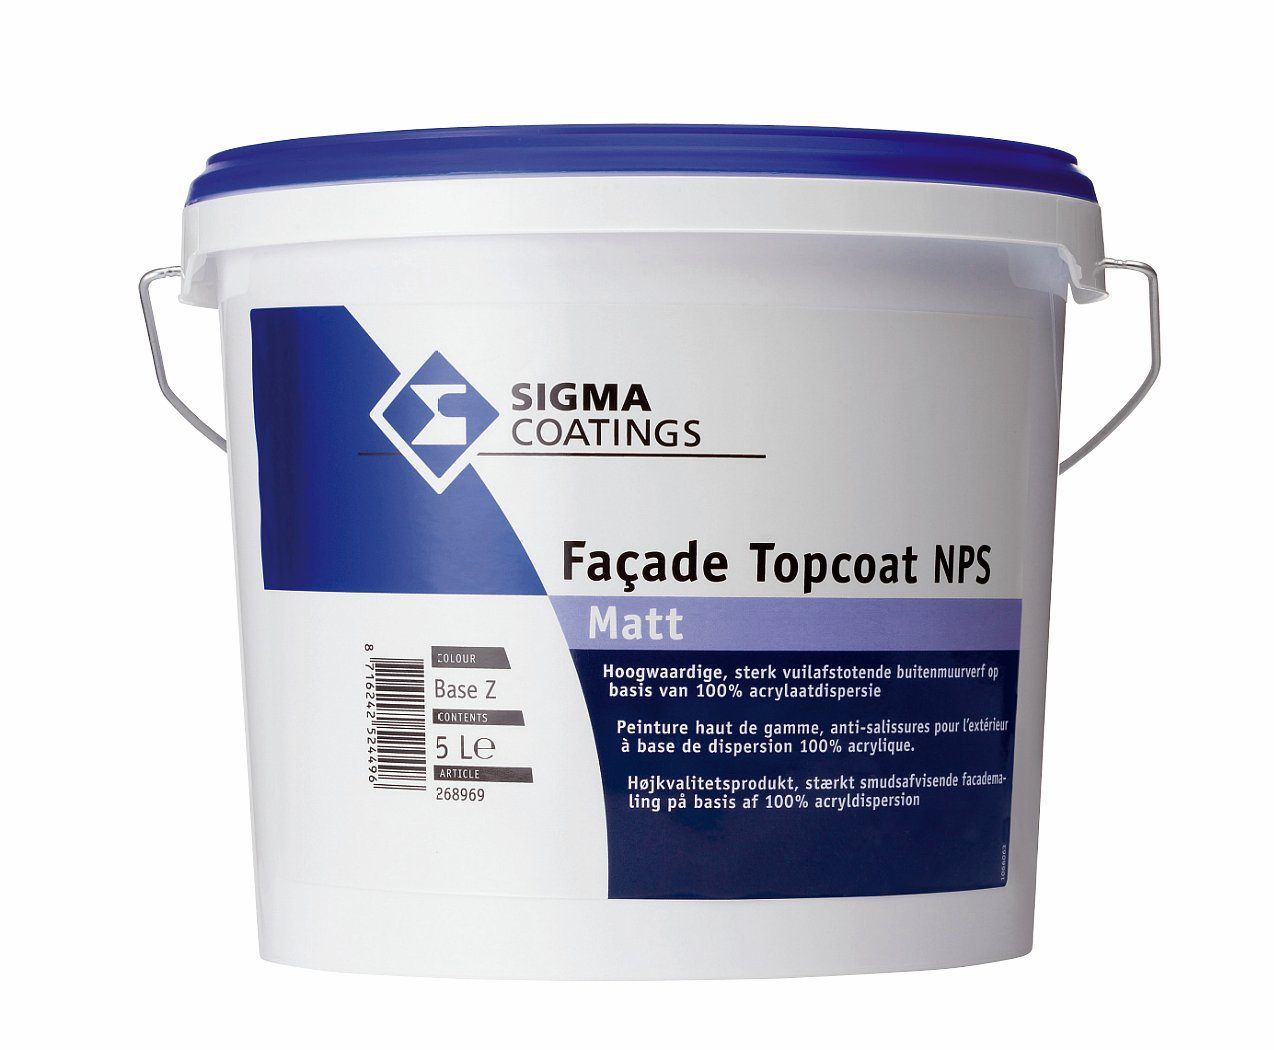 Facade Topcoat NPS